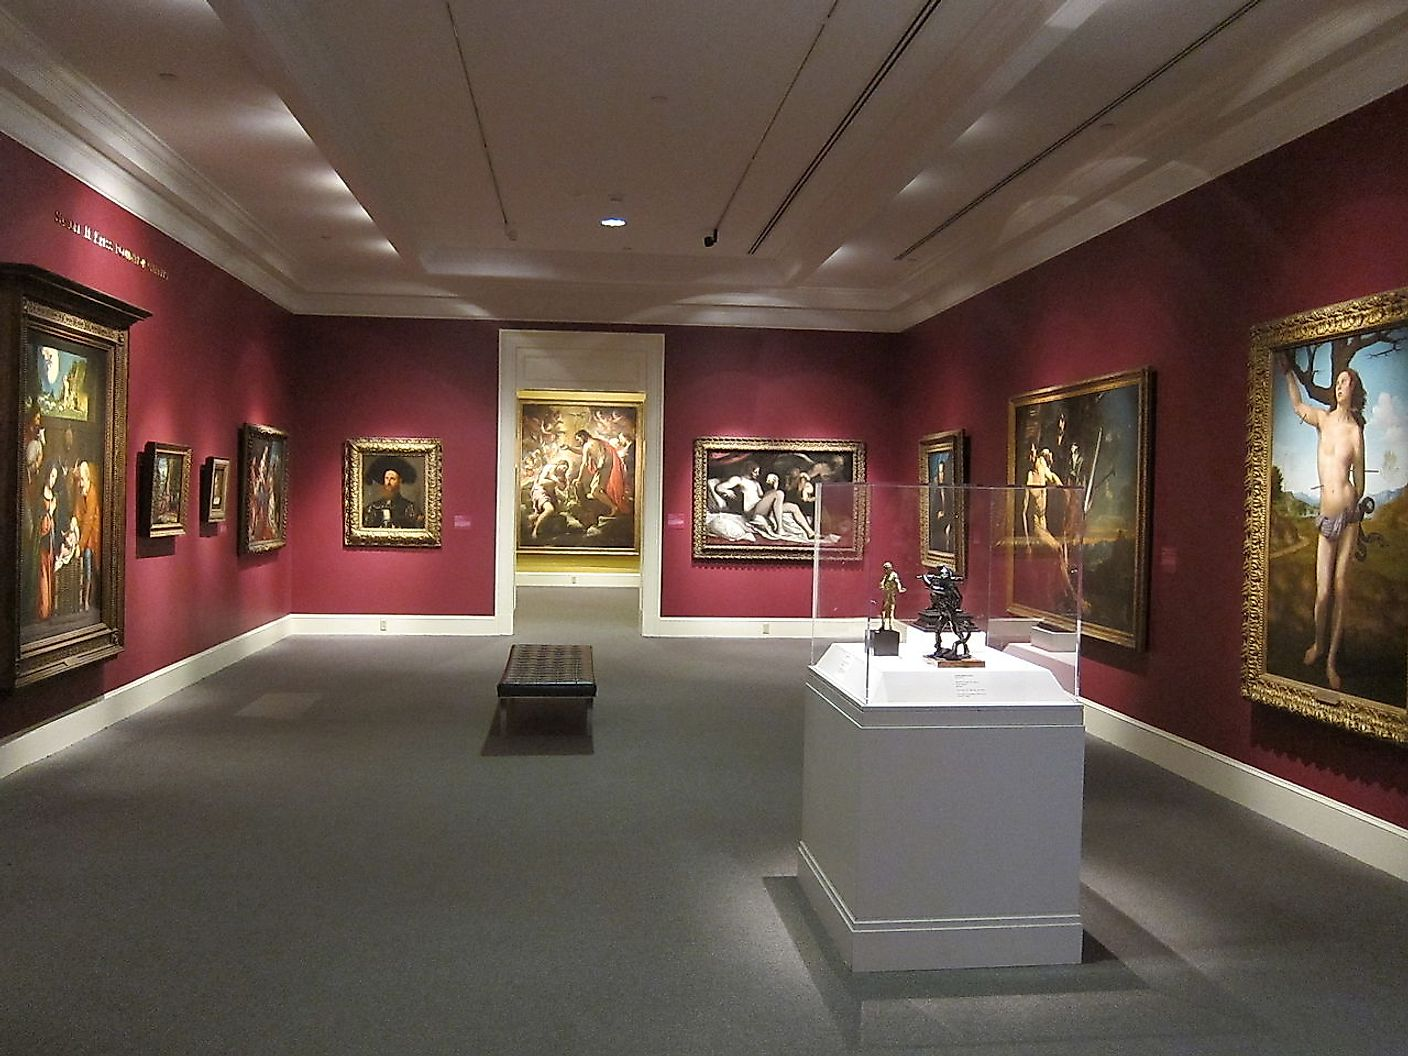 In a gallery in the New Orleans Museum of Art. Image credit: Satanoid/Wikimedia.org